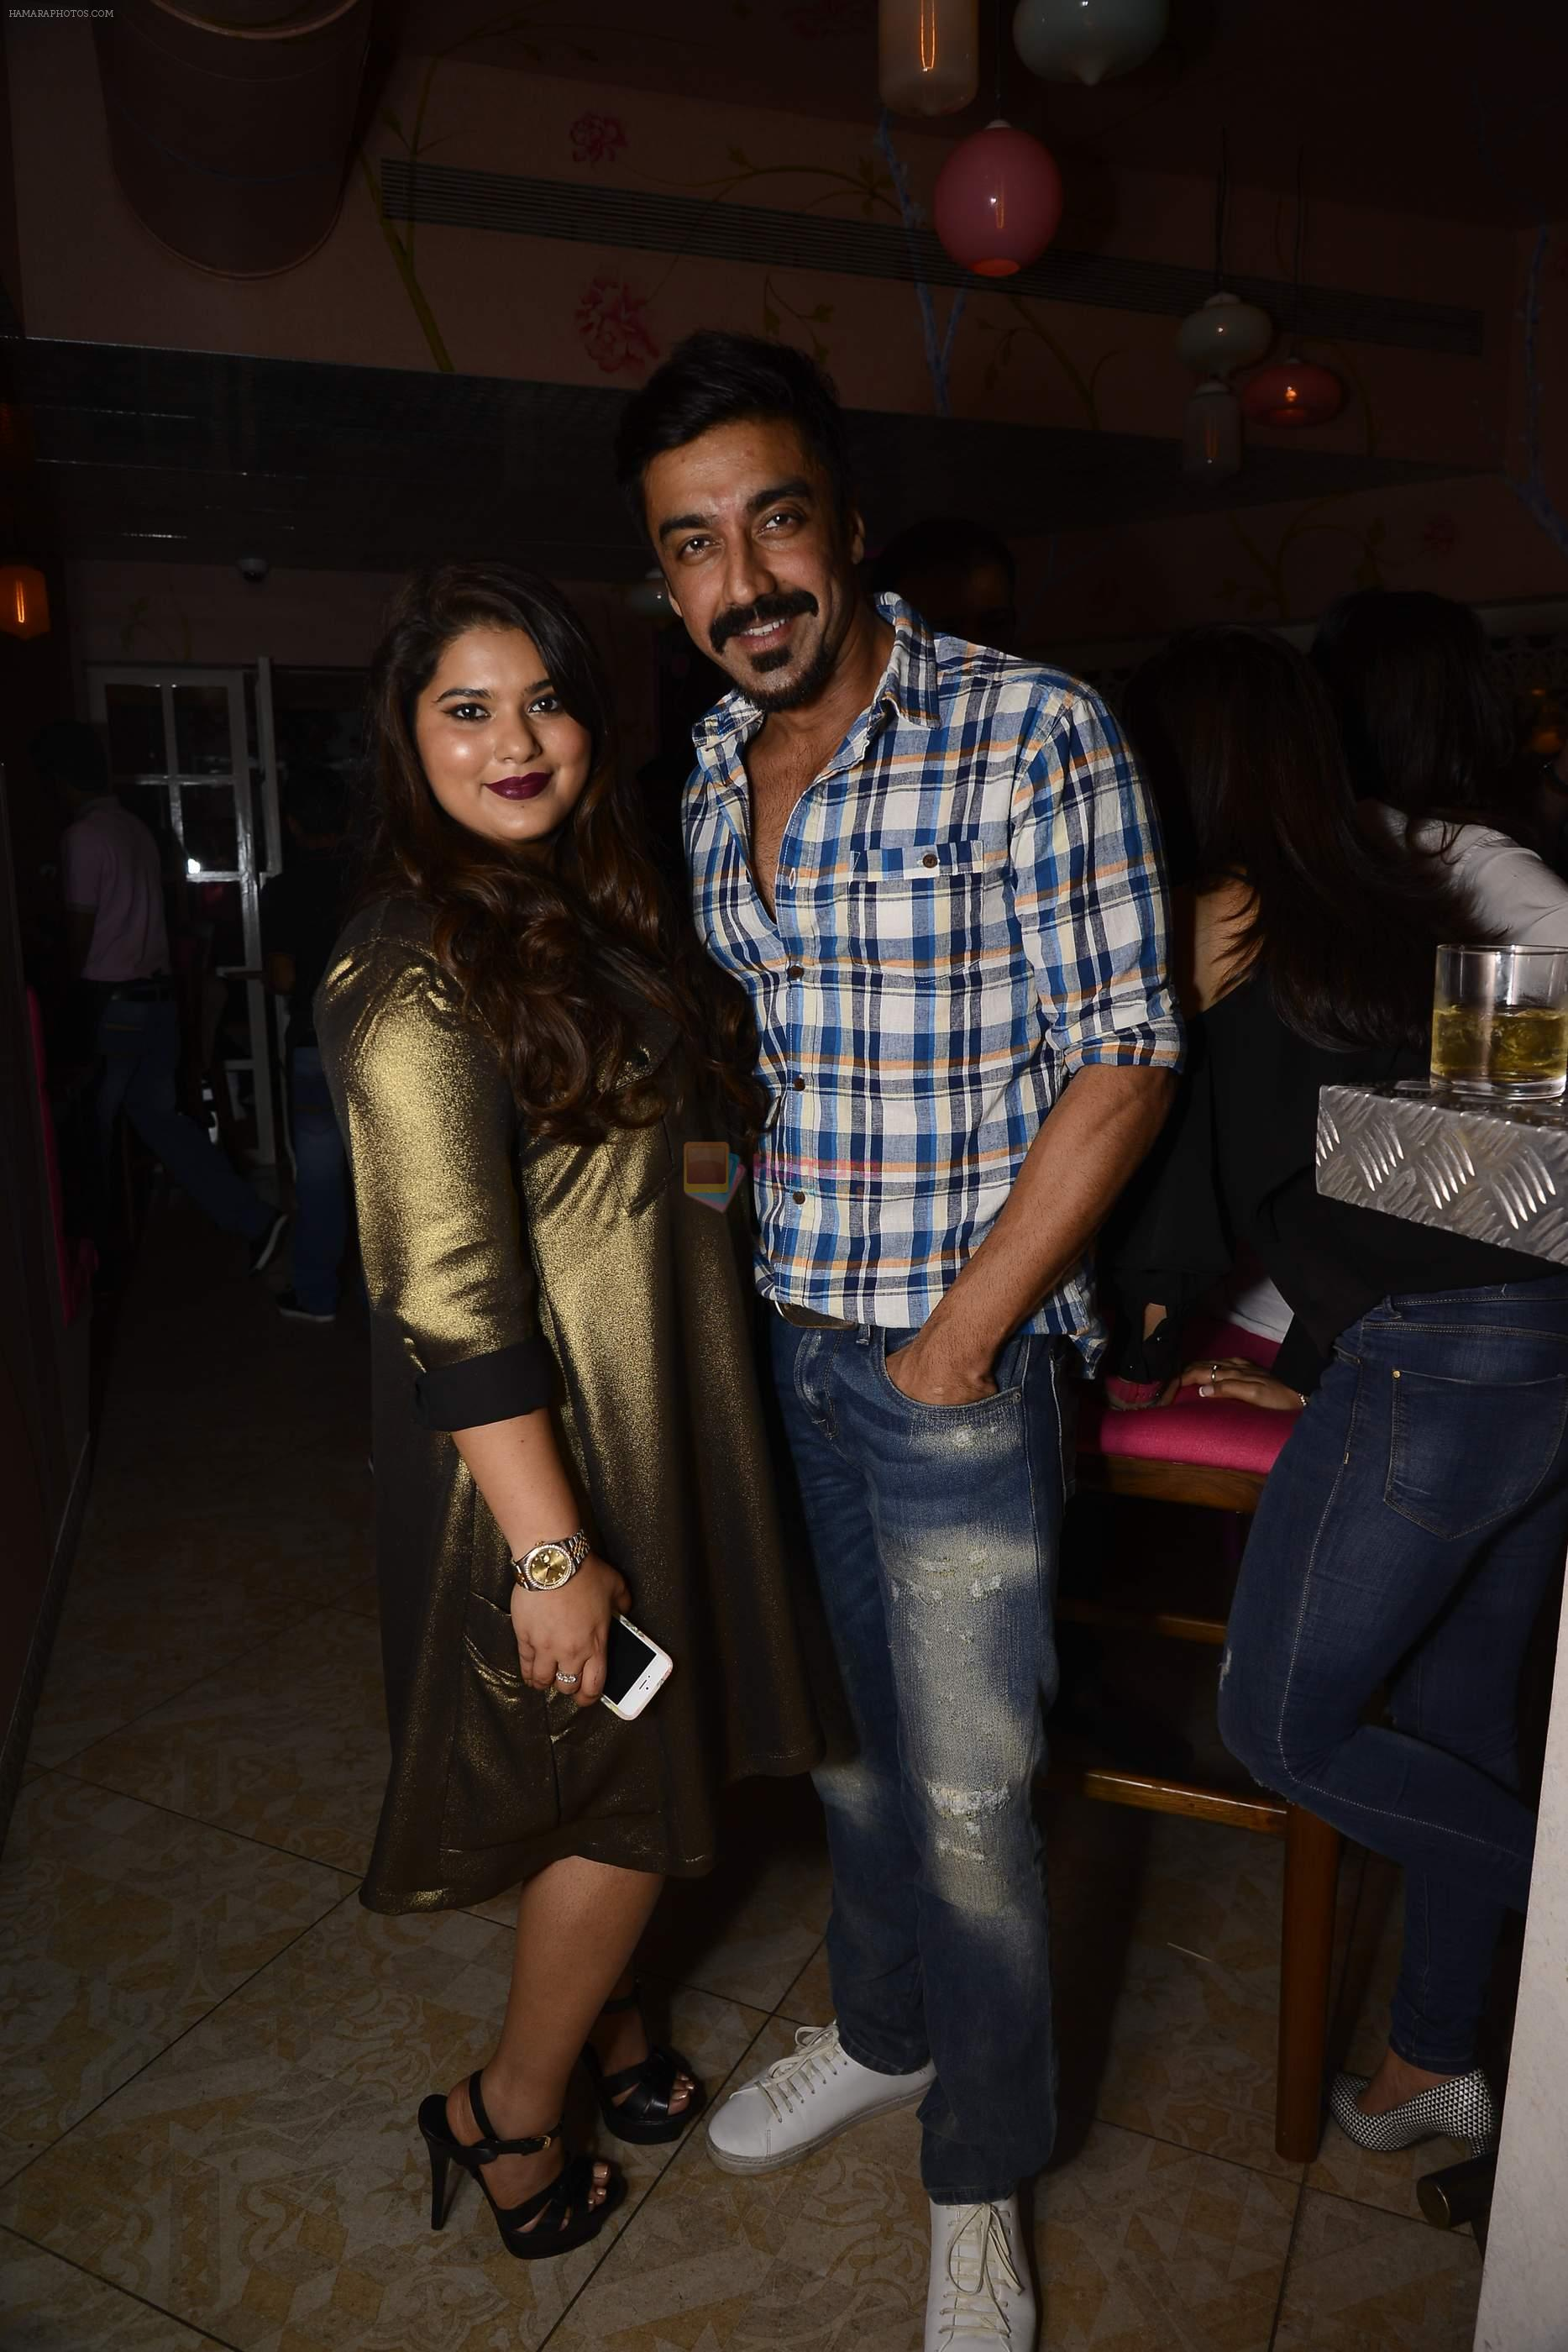 rachel goenka airh aashish chaaudry at The all new Sassy Spoon launch on 19th Oct 2016